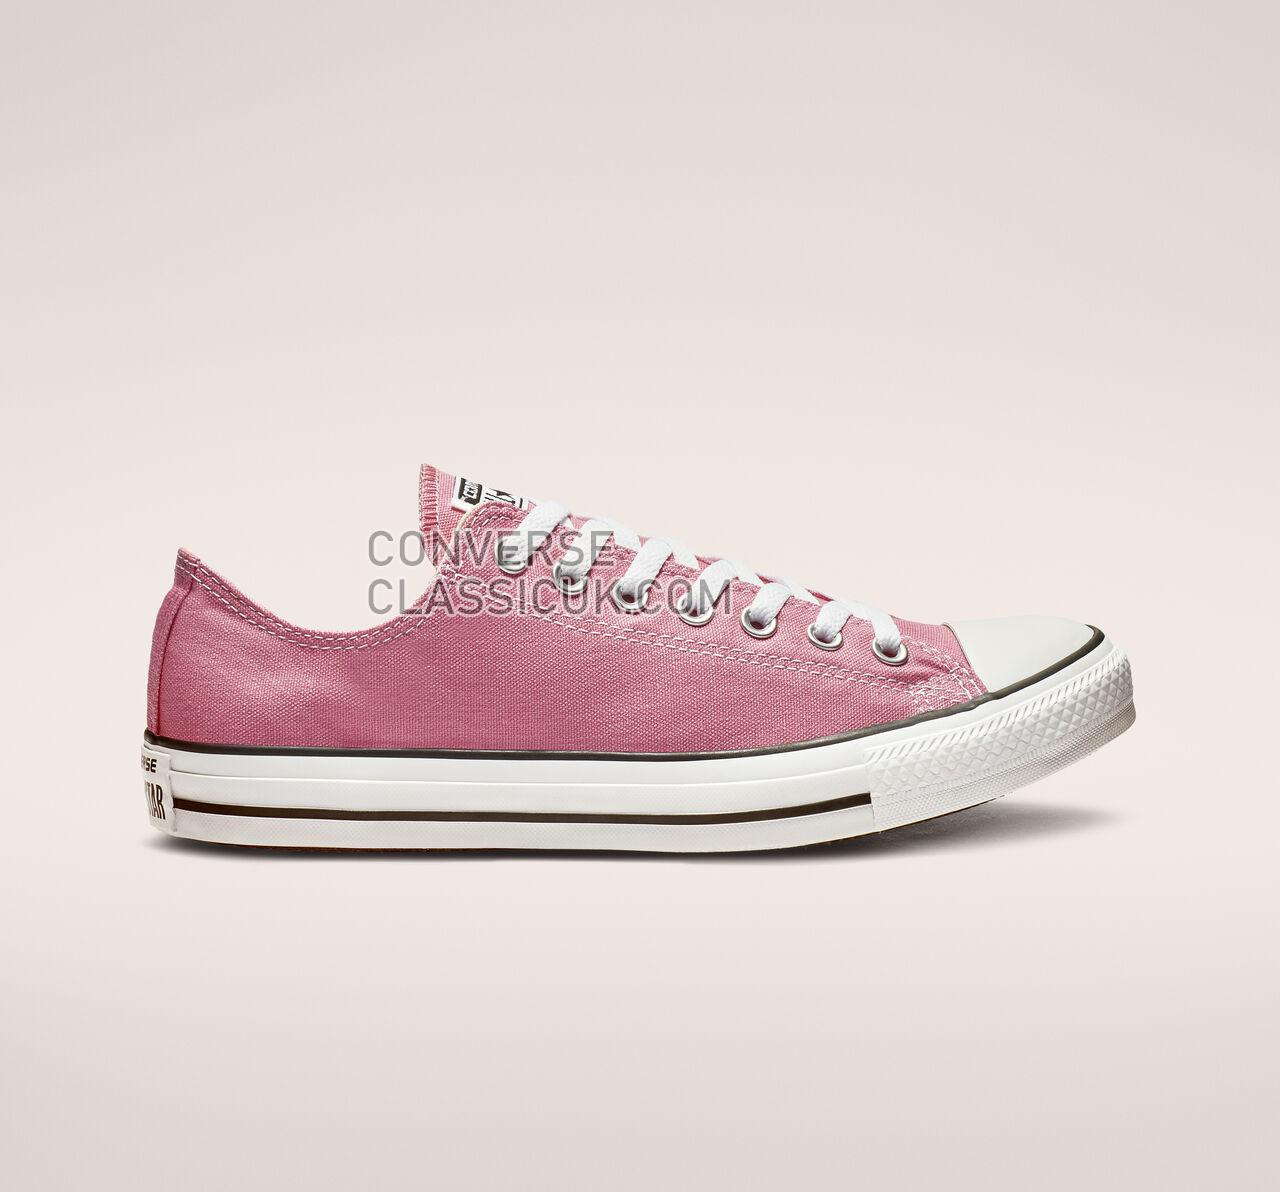 Converse Chuck Taylor All Star Low Top Mens Womens Unisex M9007 Pink Shoes